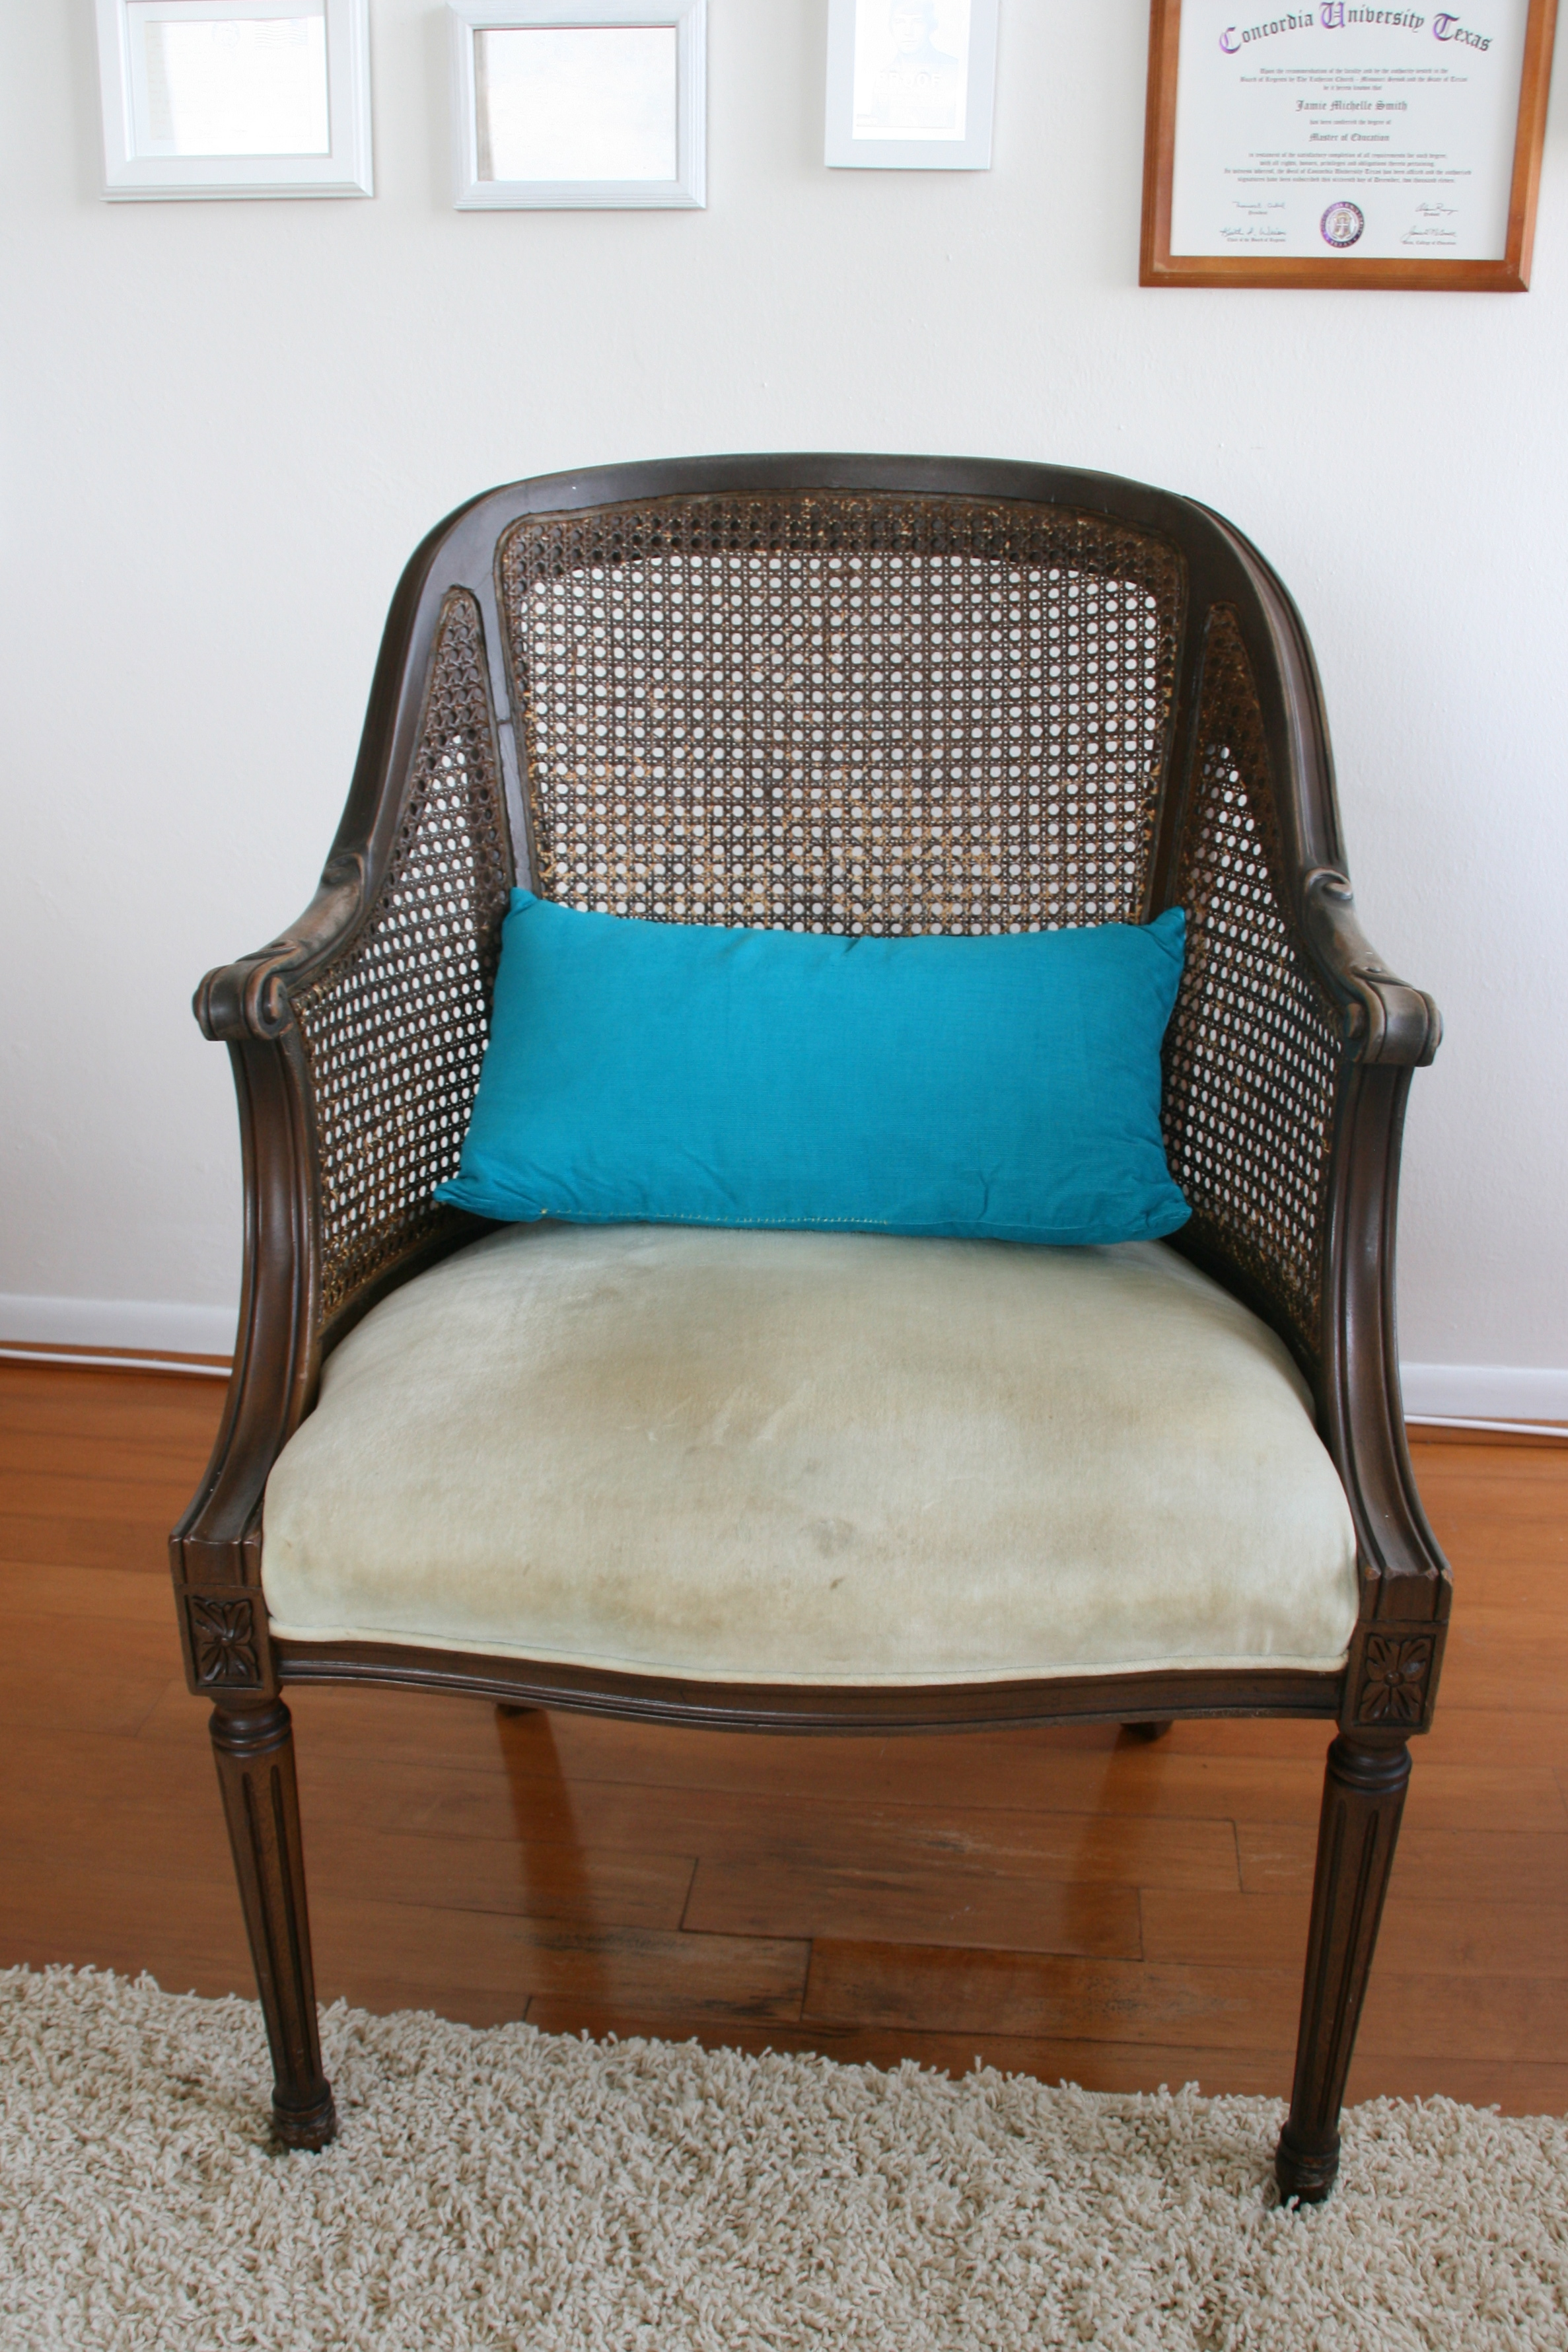 Elegant Reupholstering A Chair (Image 3 of 10)